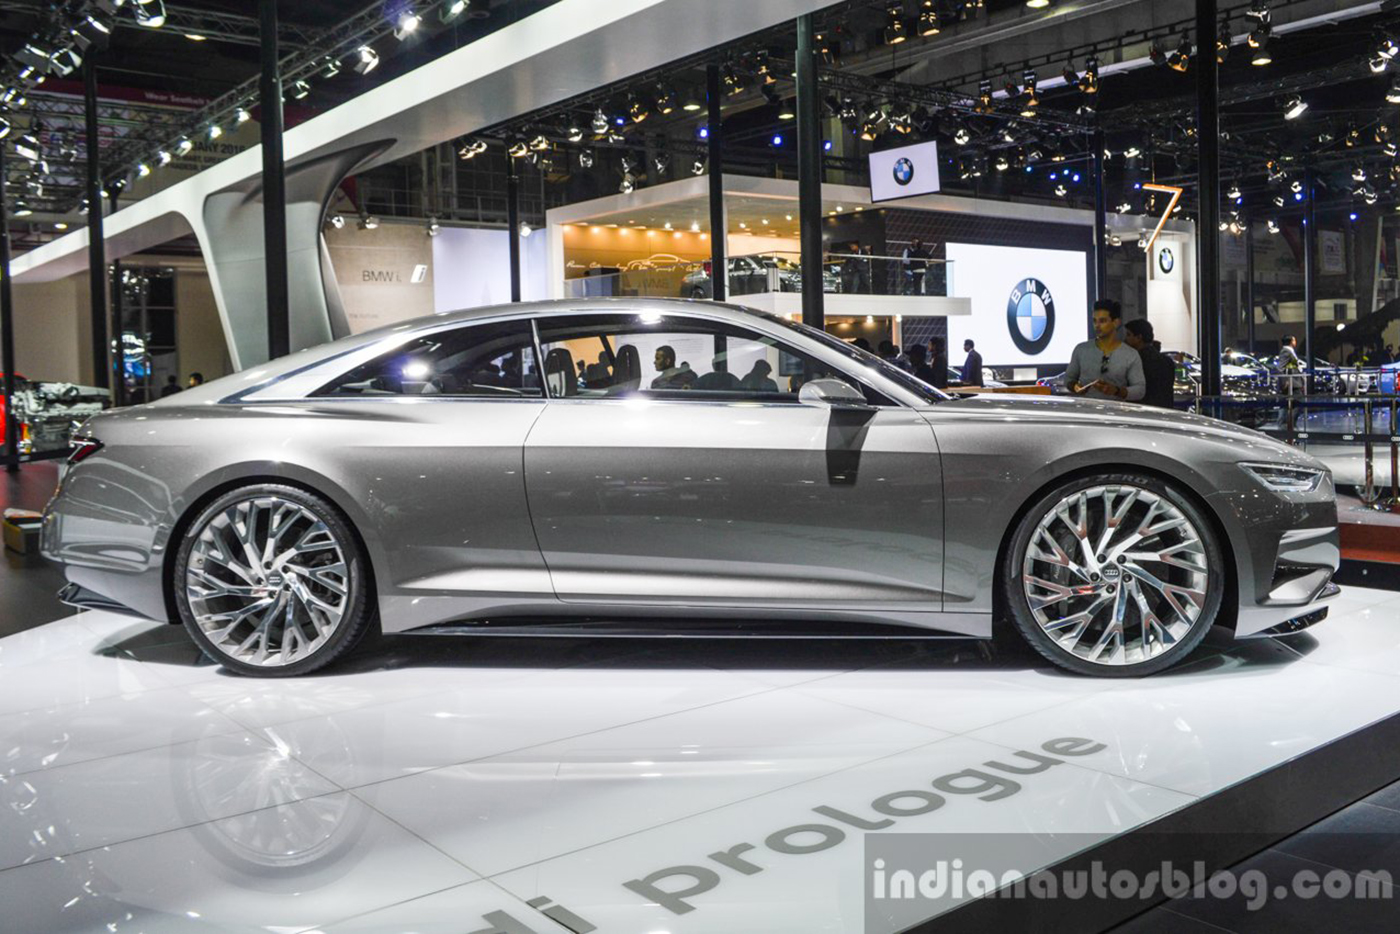 audi-prologue-allroad-concept-side-at-auto-expo-2016.jpg